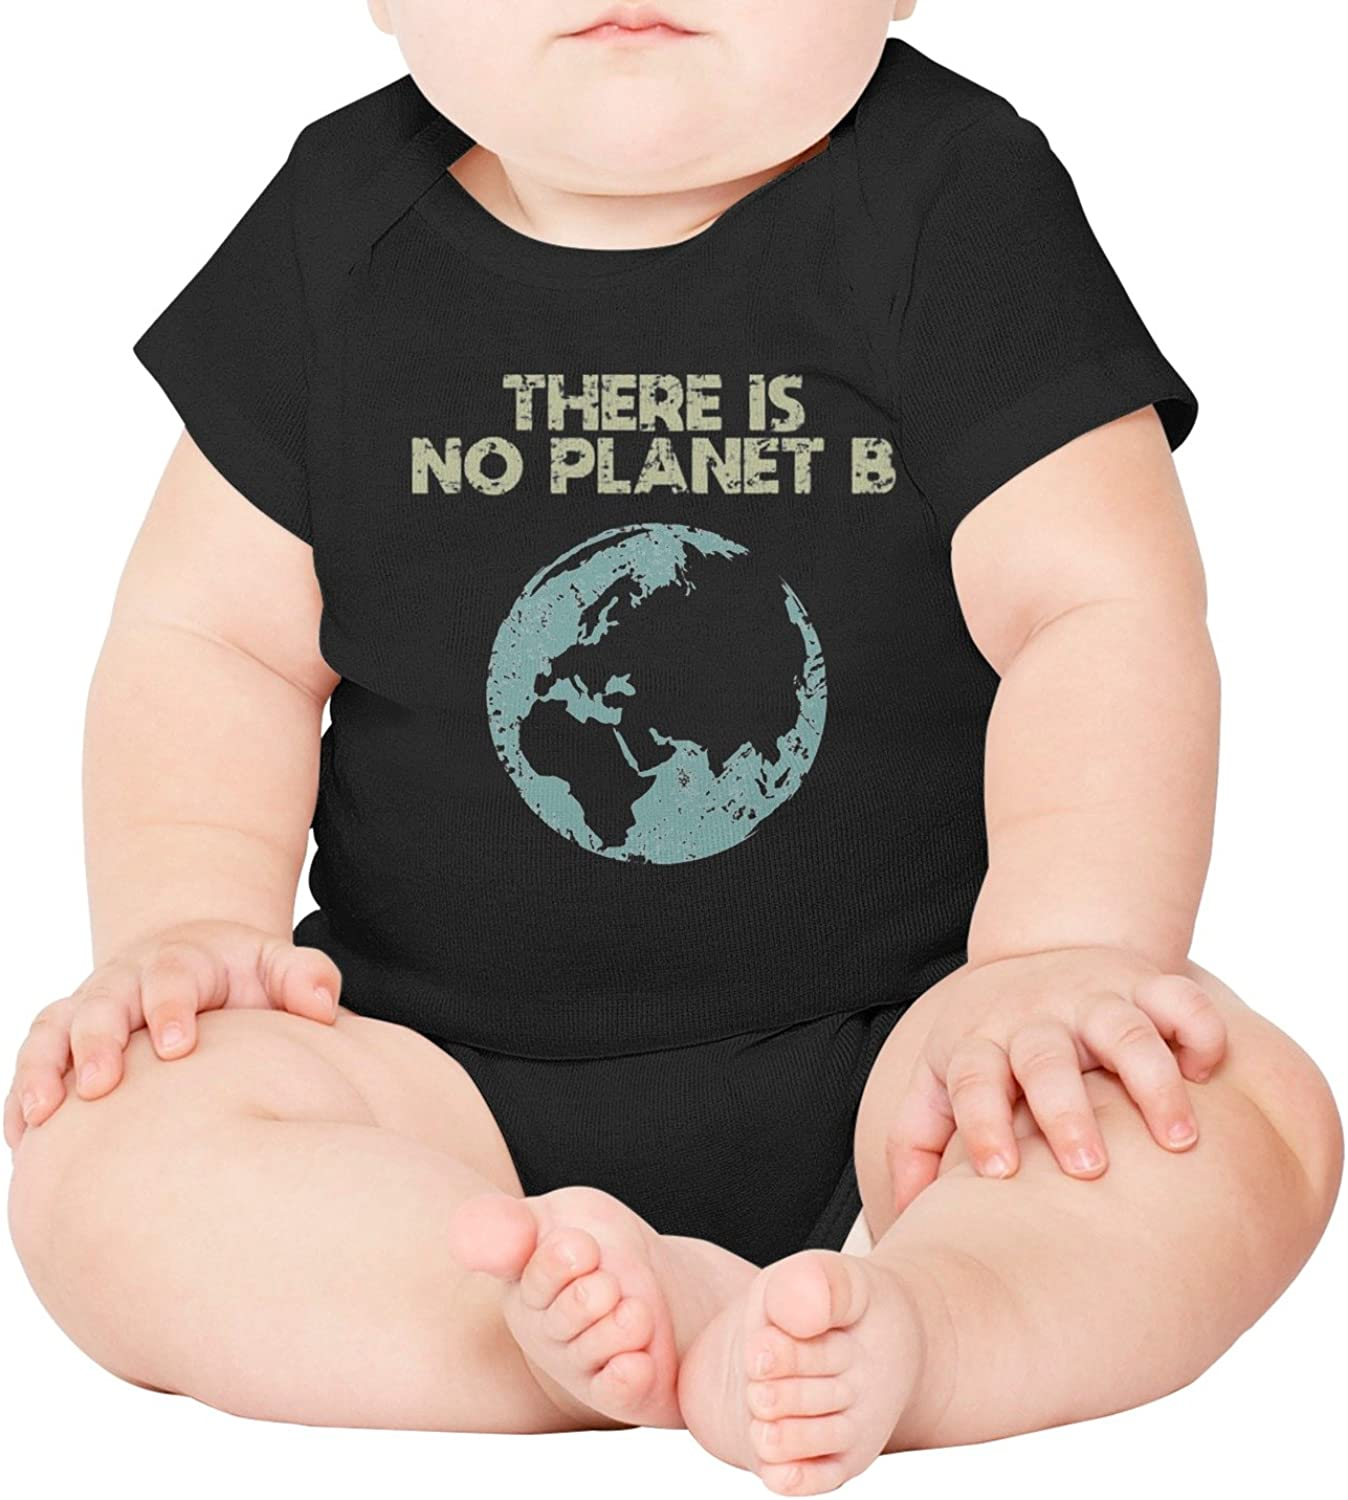 M2VIK9 Baby Romper Short Sleeve Clothes Jumpsuit Earth Day There is No Planet B Bodysuit Playsuit Outfits